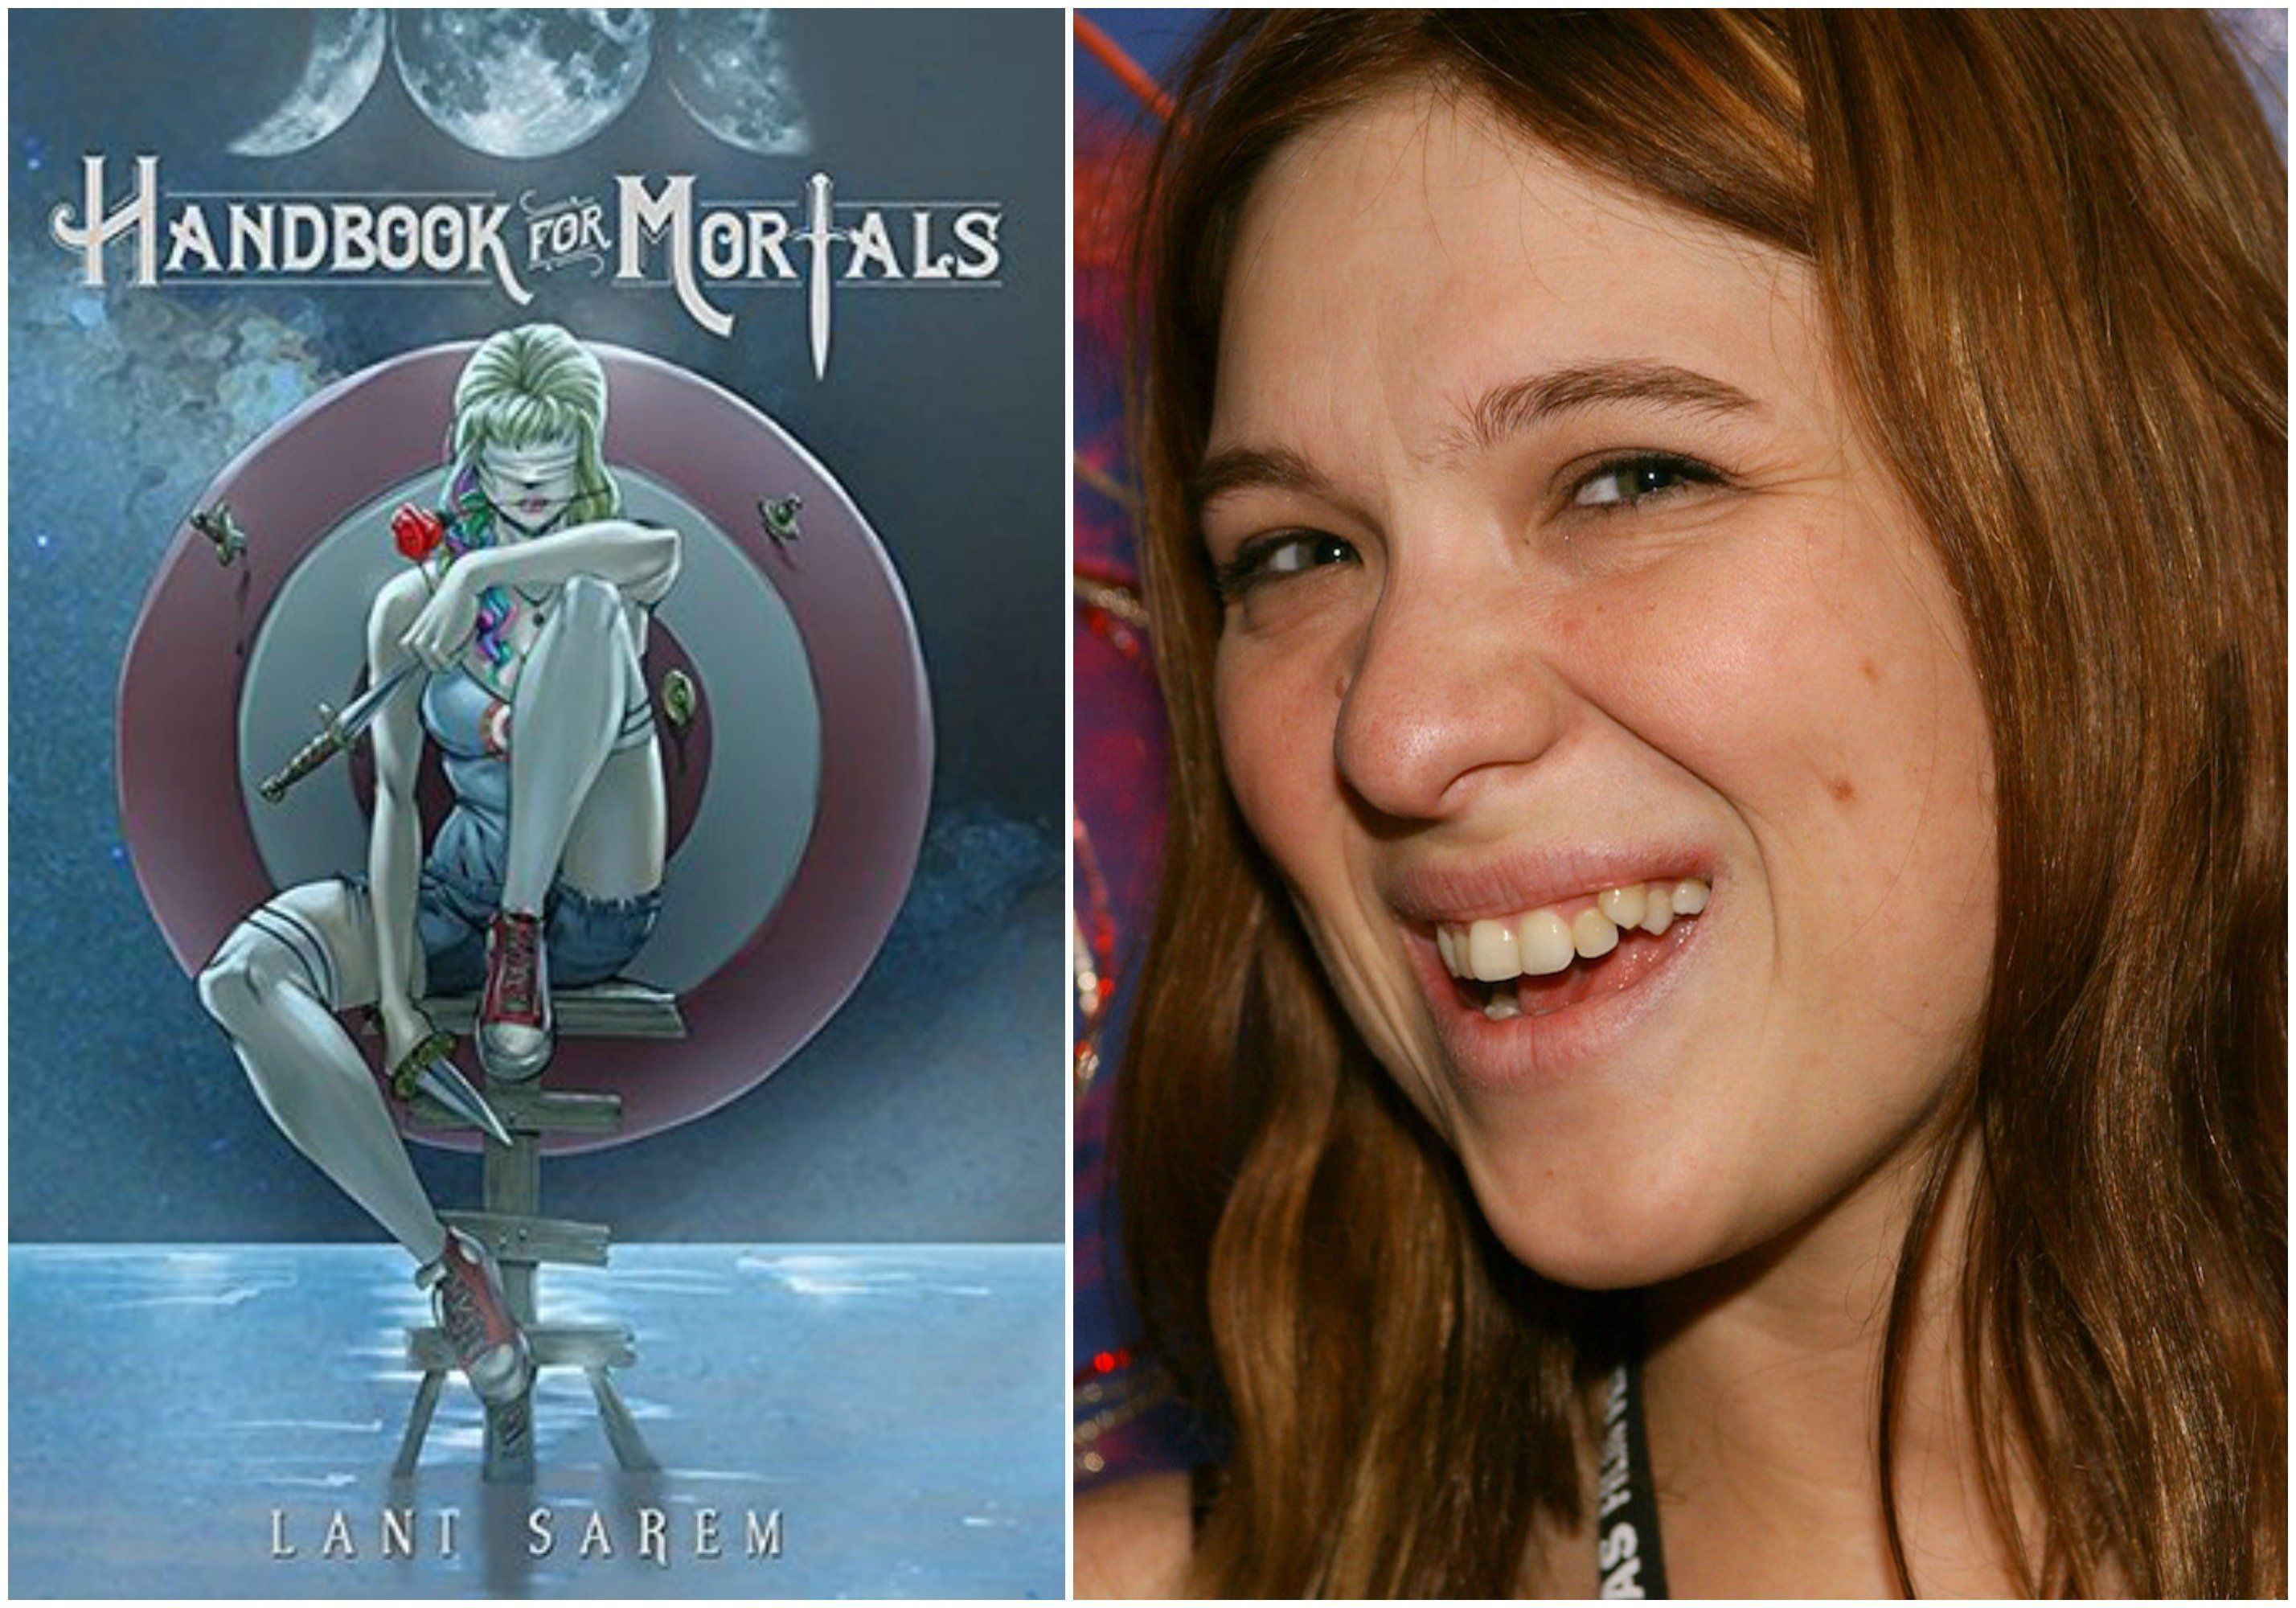 Lani Sarem (right) caused a stir when her debut book <i>Handbook for Mortals</i> hit the YA hardcover New York Times best-sel